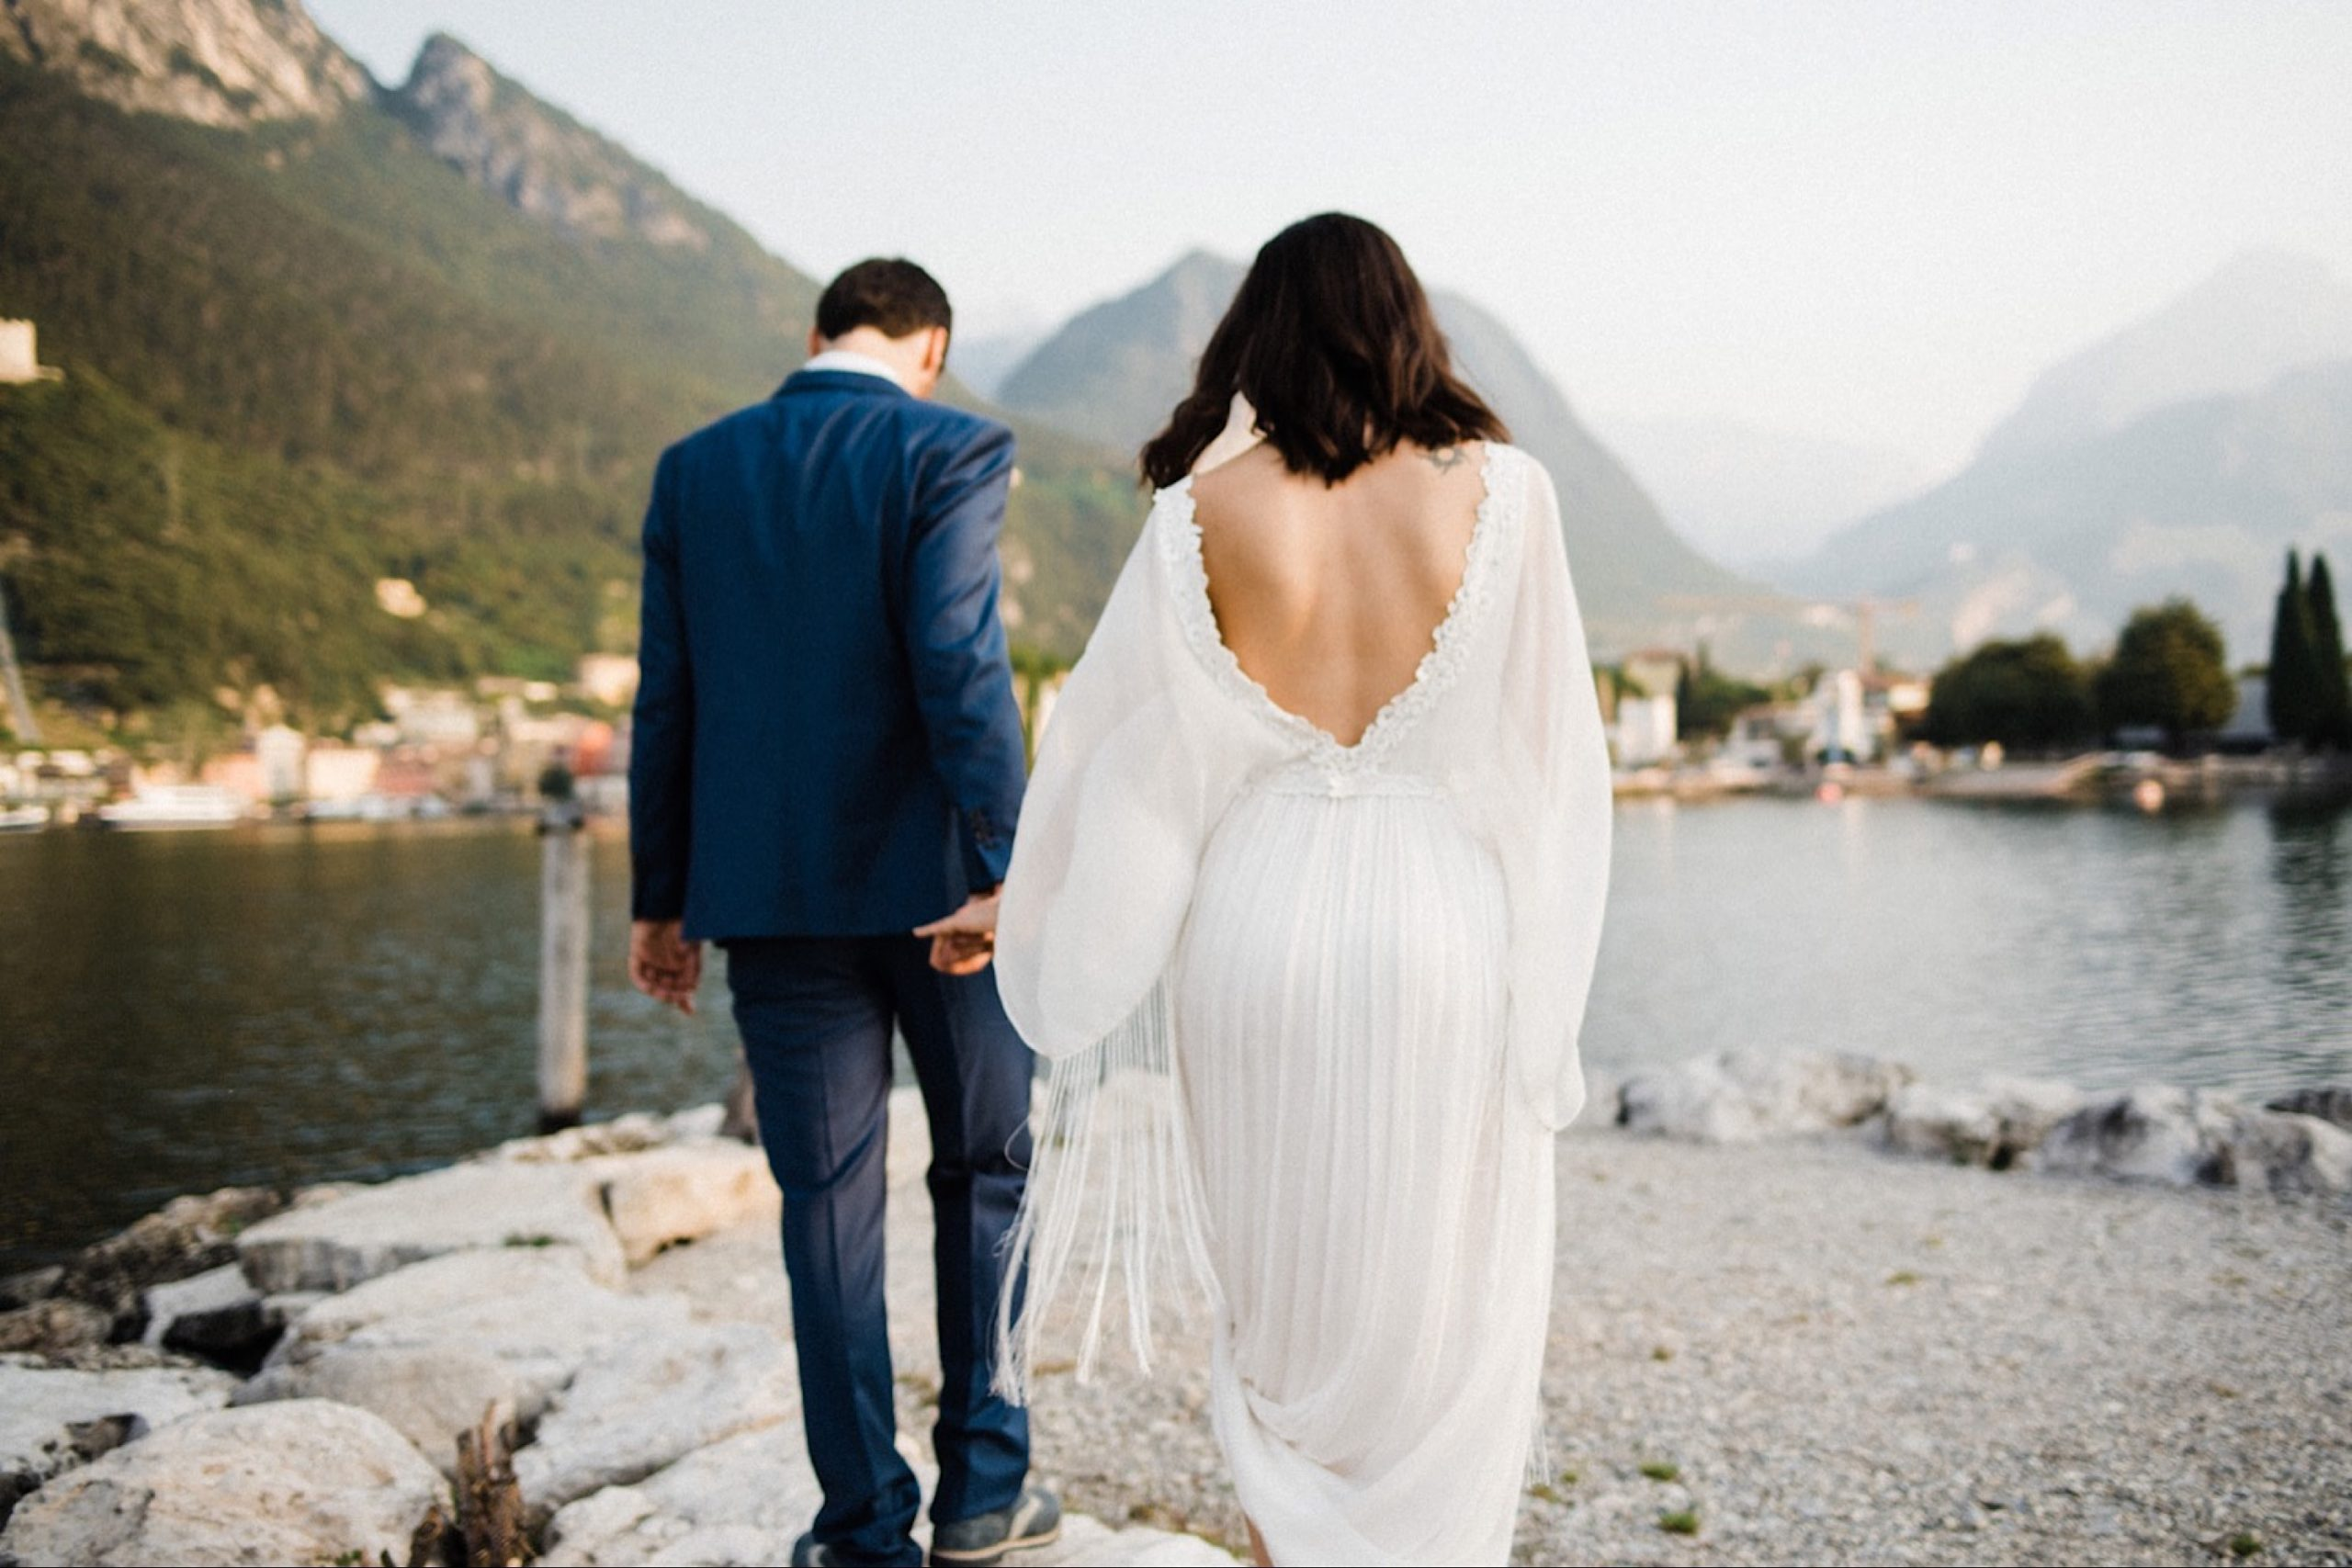 Romantic Boho Summer Elopement in Italy photo of a couple walking towards a lake with mountains in the background. The groom wears a blue May Faber Milano suit and the bride wears a backless, sustainable wedding gown by Leila Hafzi.